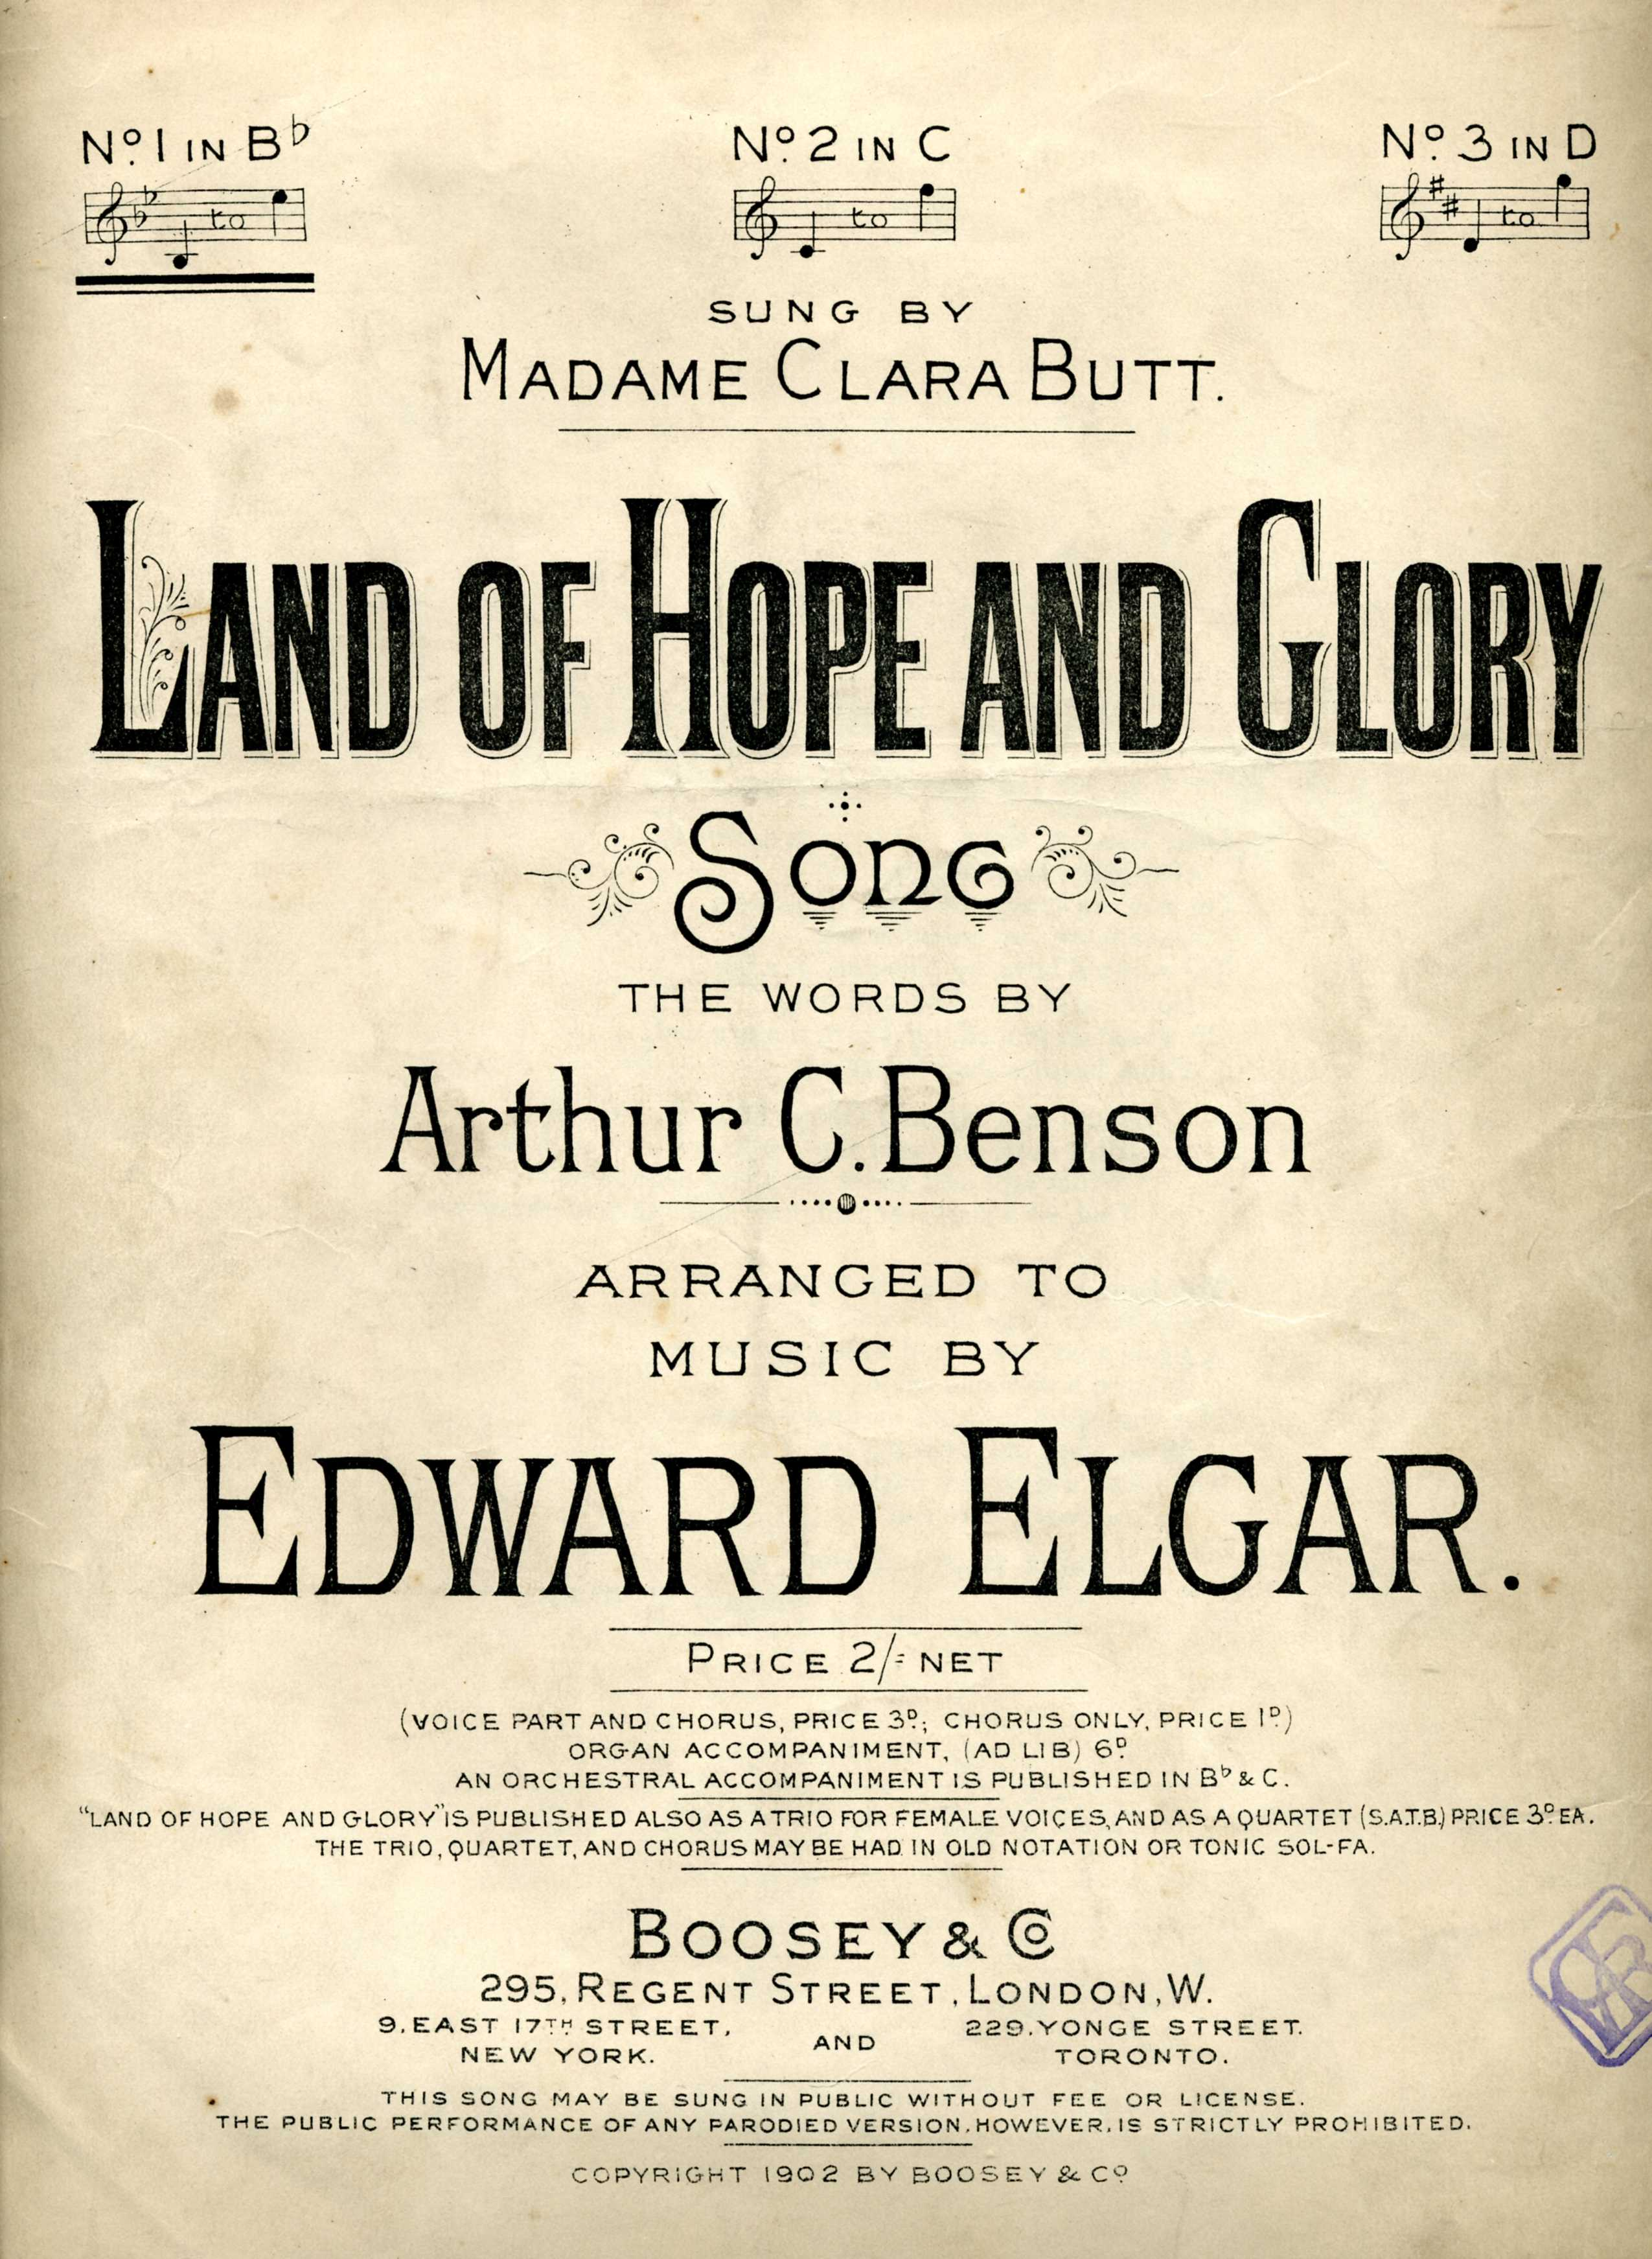 File:Land of Hope and Glory by Elgar song cover 1902 jpg